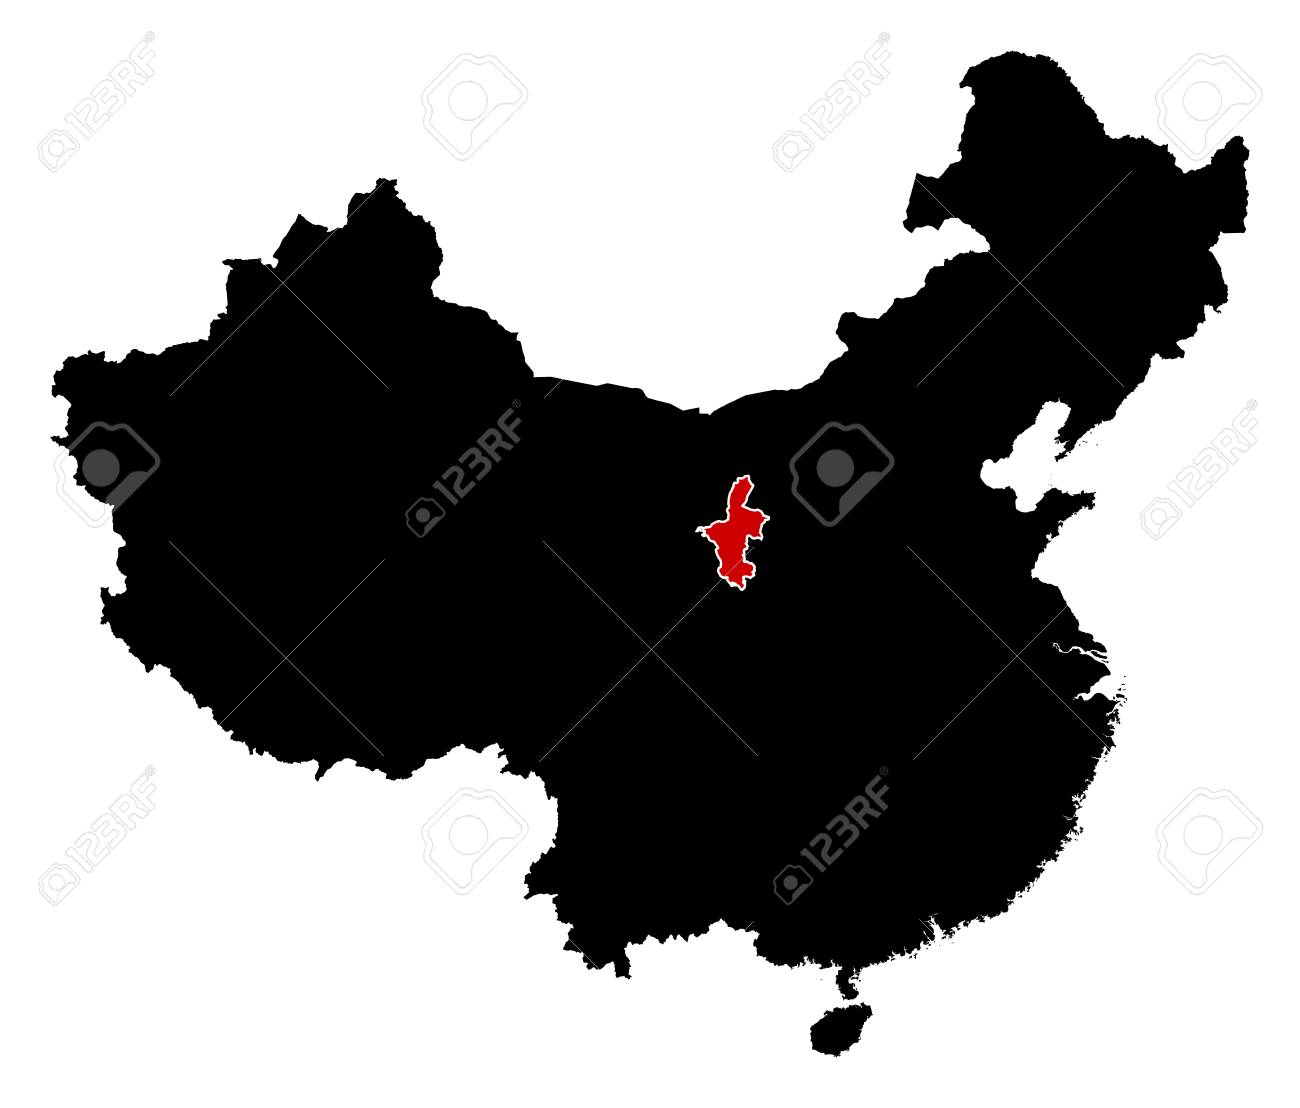 Ningxia China Map.Map Of China In Black Ningxia Is Highlighted In Red Royalty Free